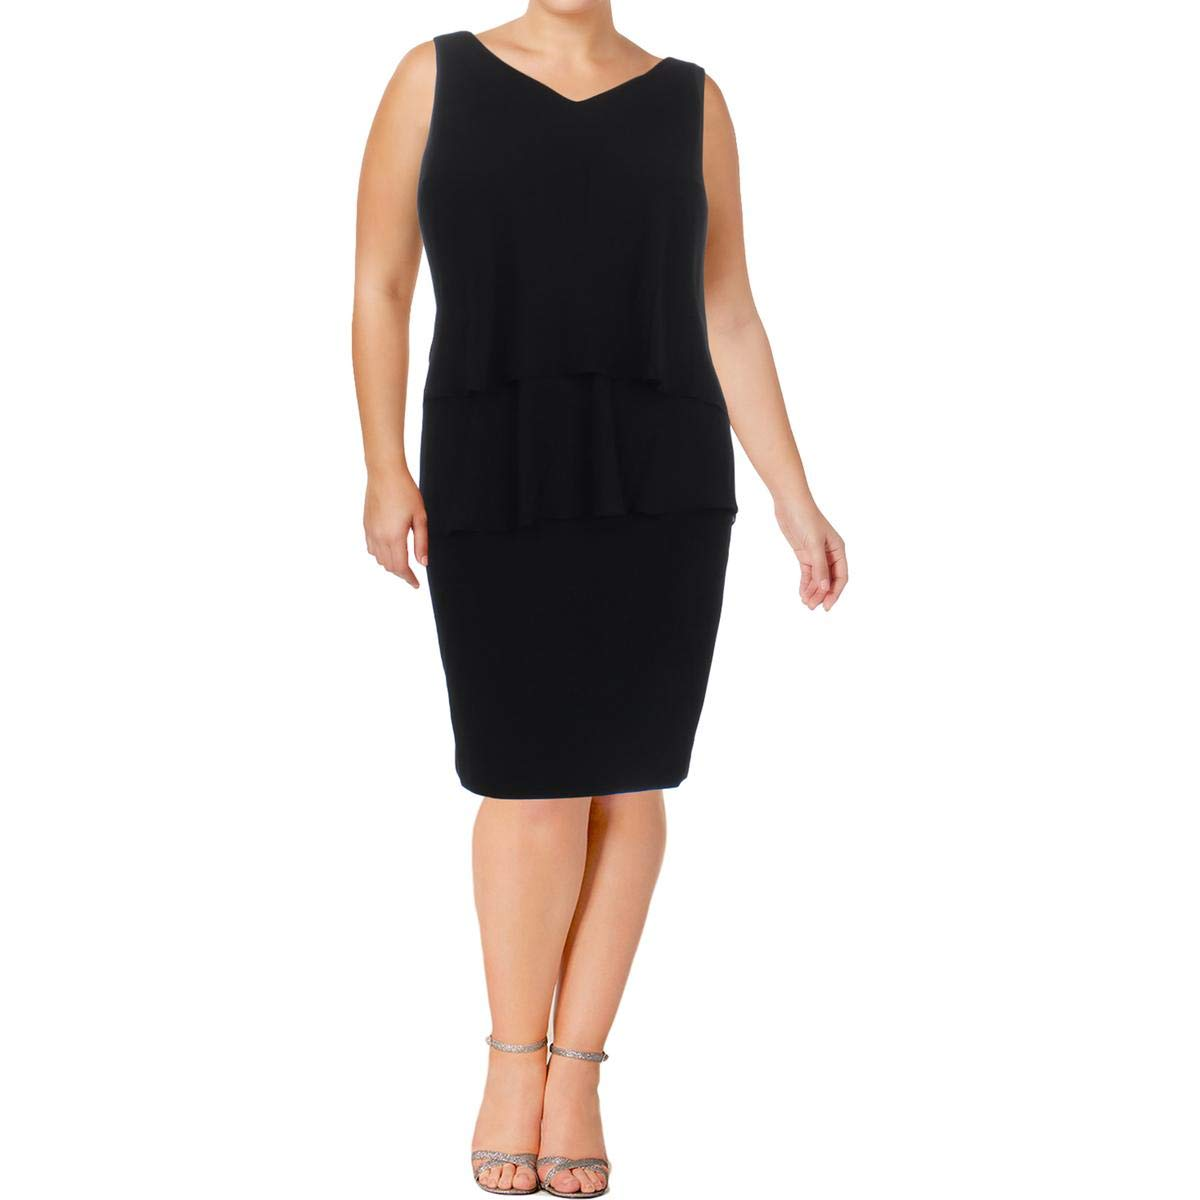 Lauren Ralph Lauren Womens Plus Sleeveless Evening Cocktail Dress Black 22W